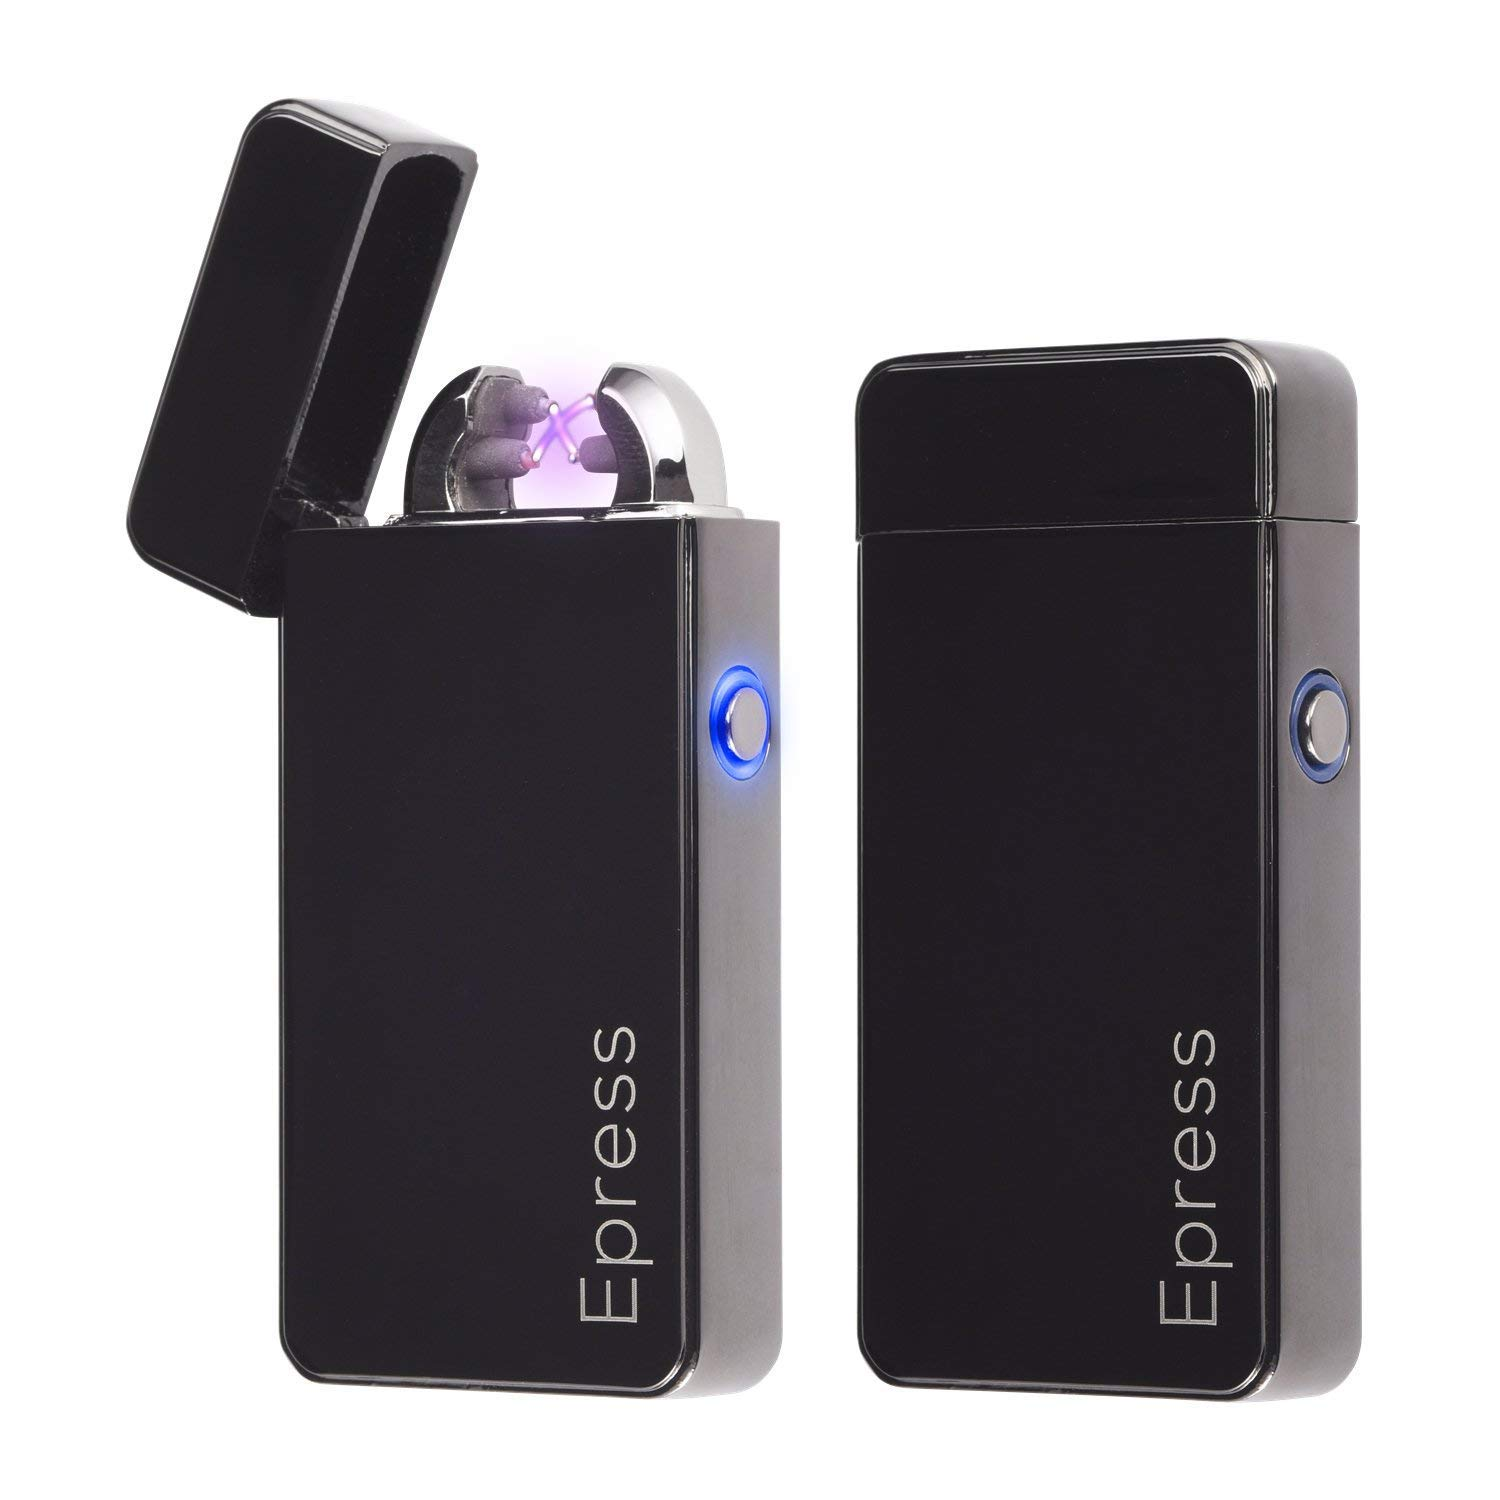 Electronic Cigarette Lighters 2 Pack, Epress Dual Arc Electric Plasma Lighter USB Rechargeable Cigarette Lighter Metal Beam Lighters